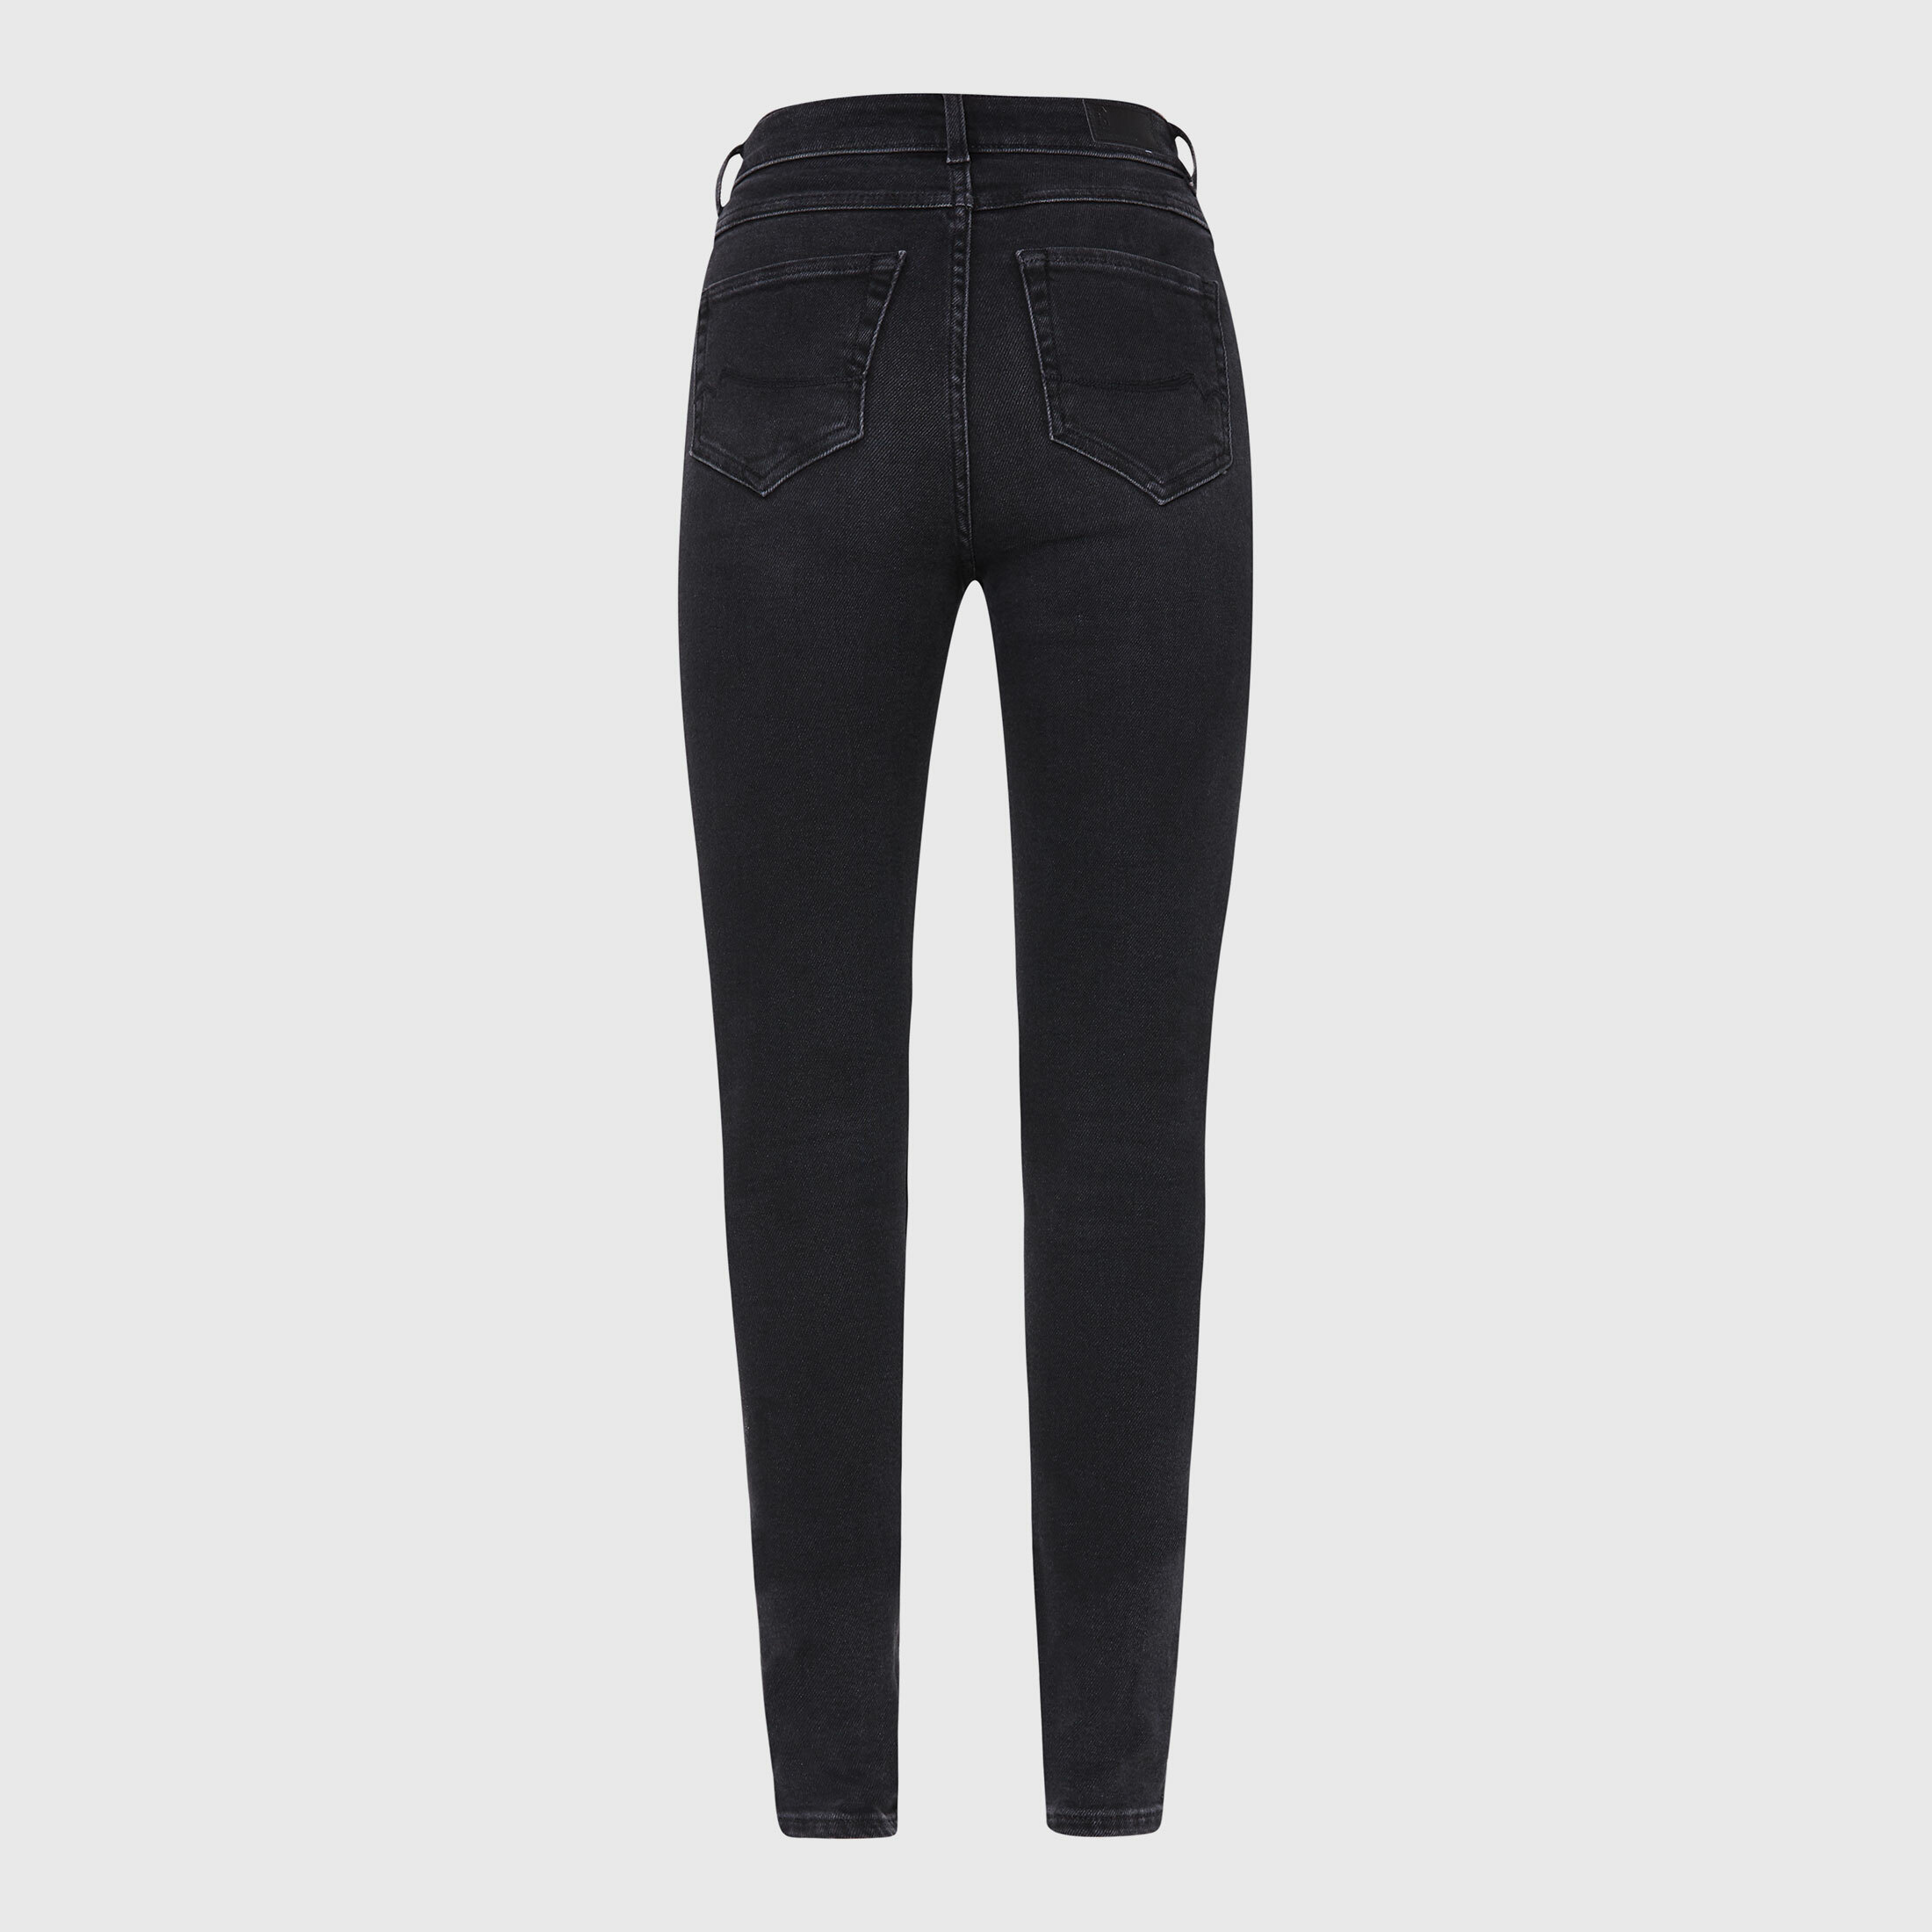 High Waist Skinny Jeans AL-MA black